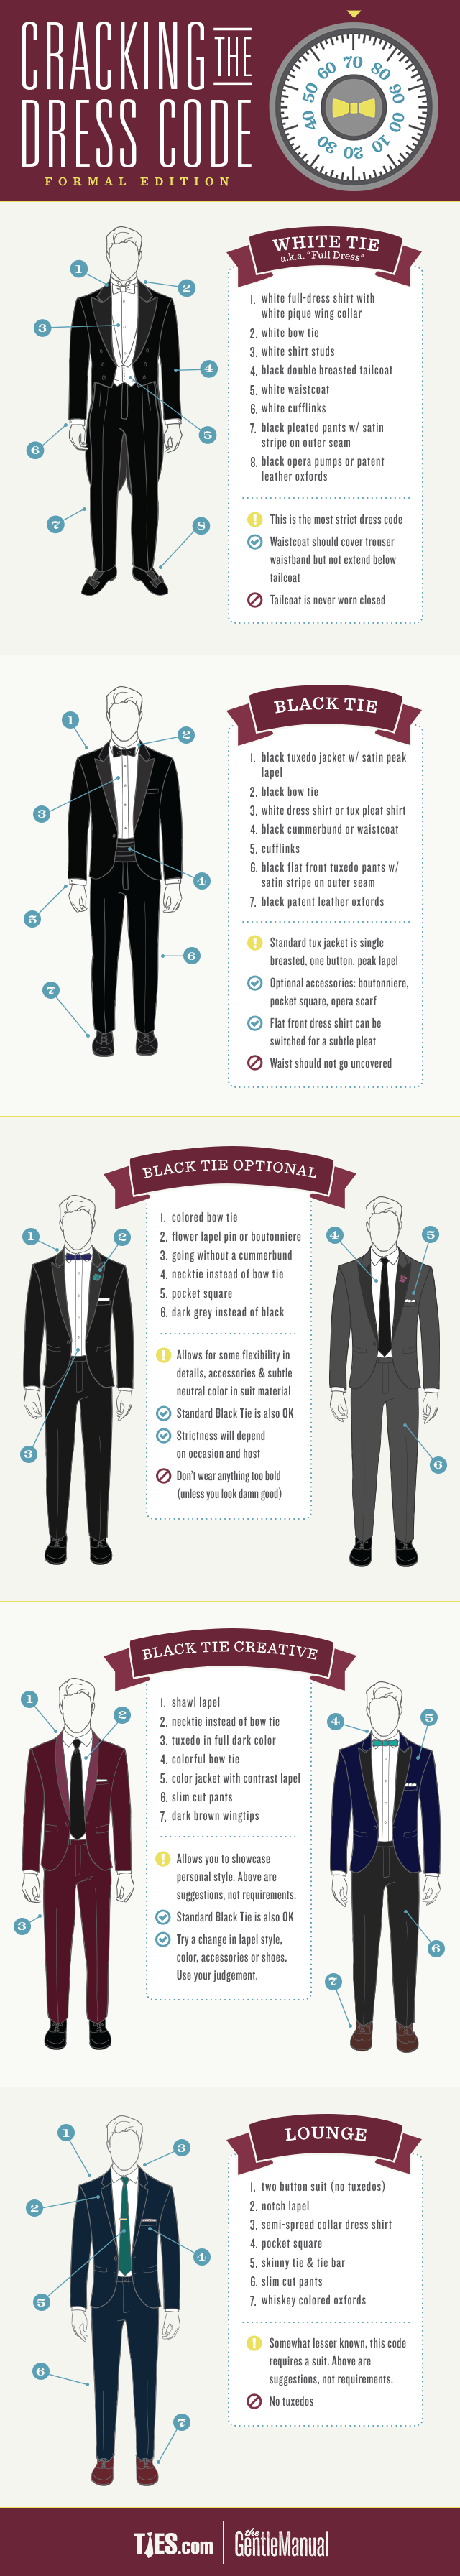 Michael Cole Micole97 On Pinterest How To Tie A The Doublewrap Double Windsor Knot